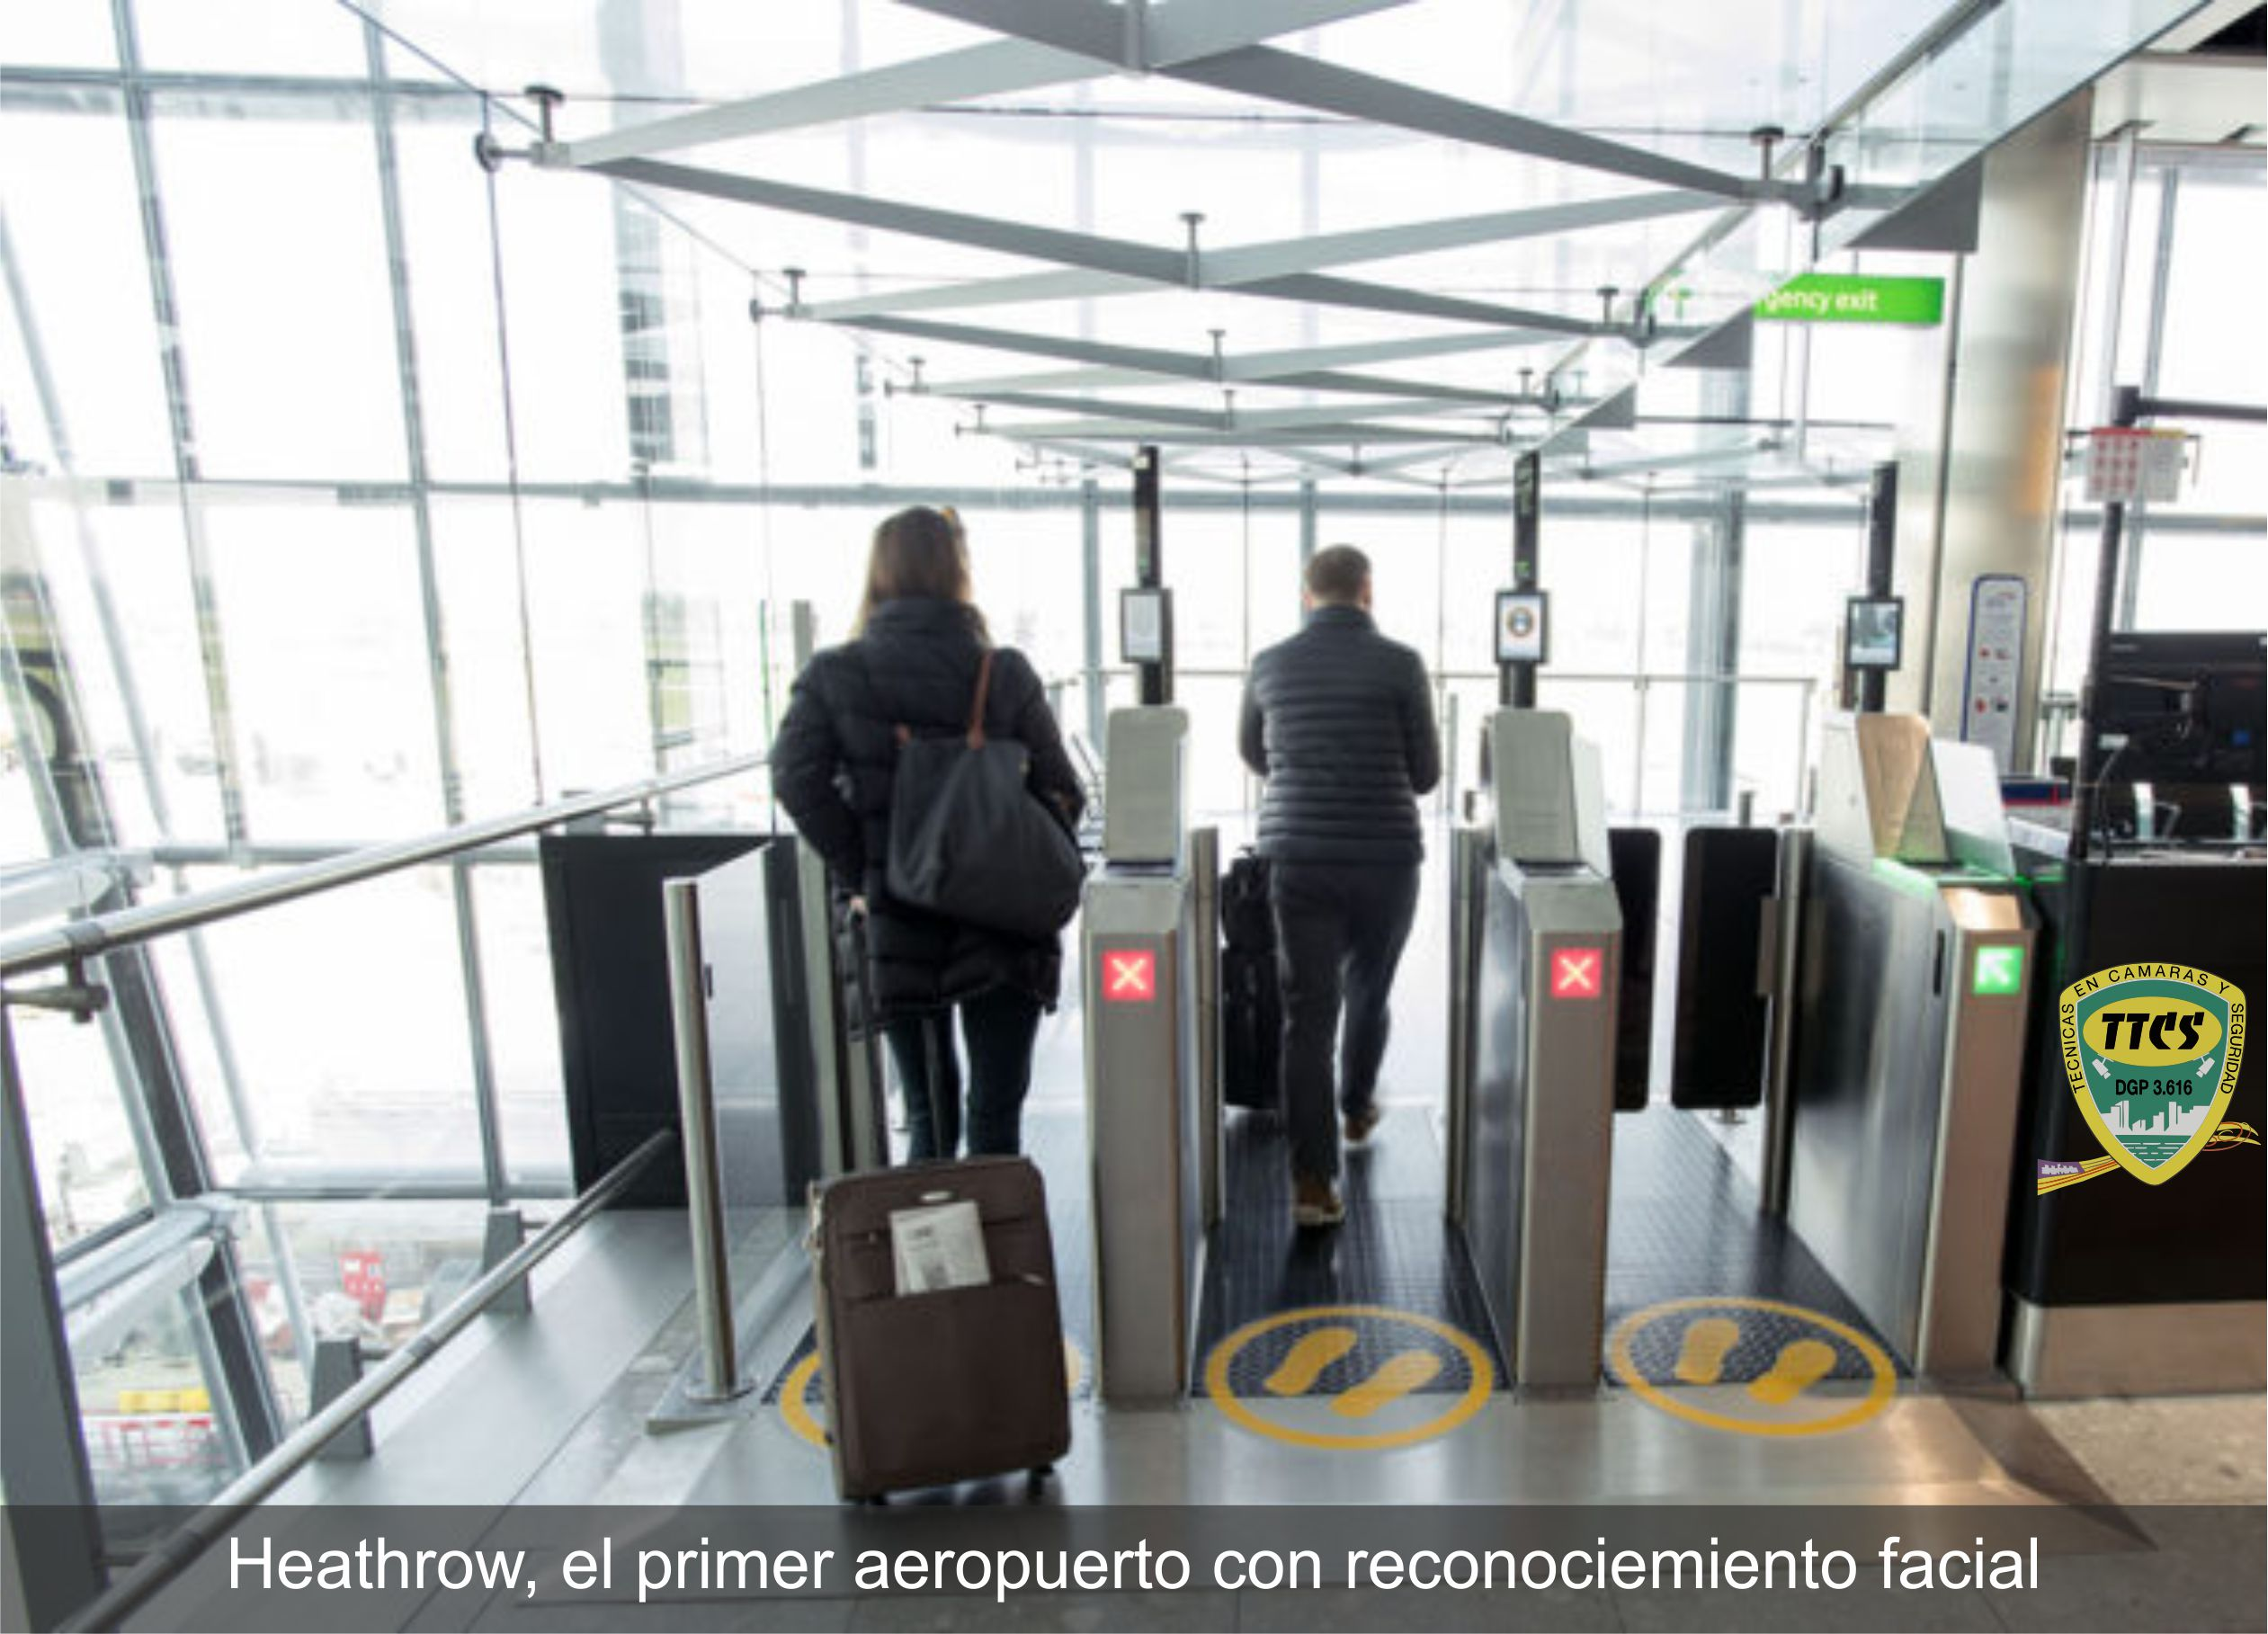 Aeropuerto de Heathrow biometria 4 605x436